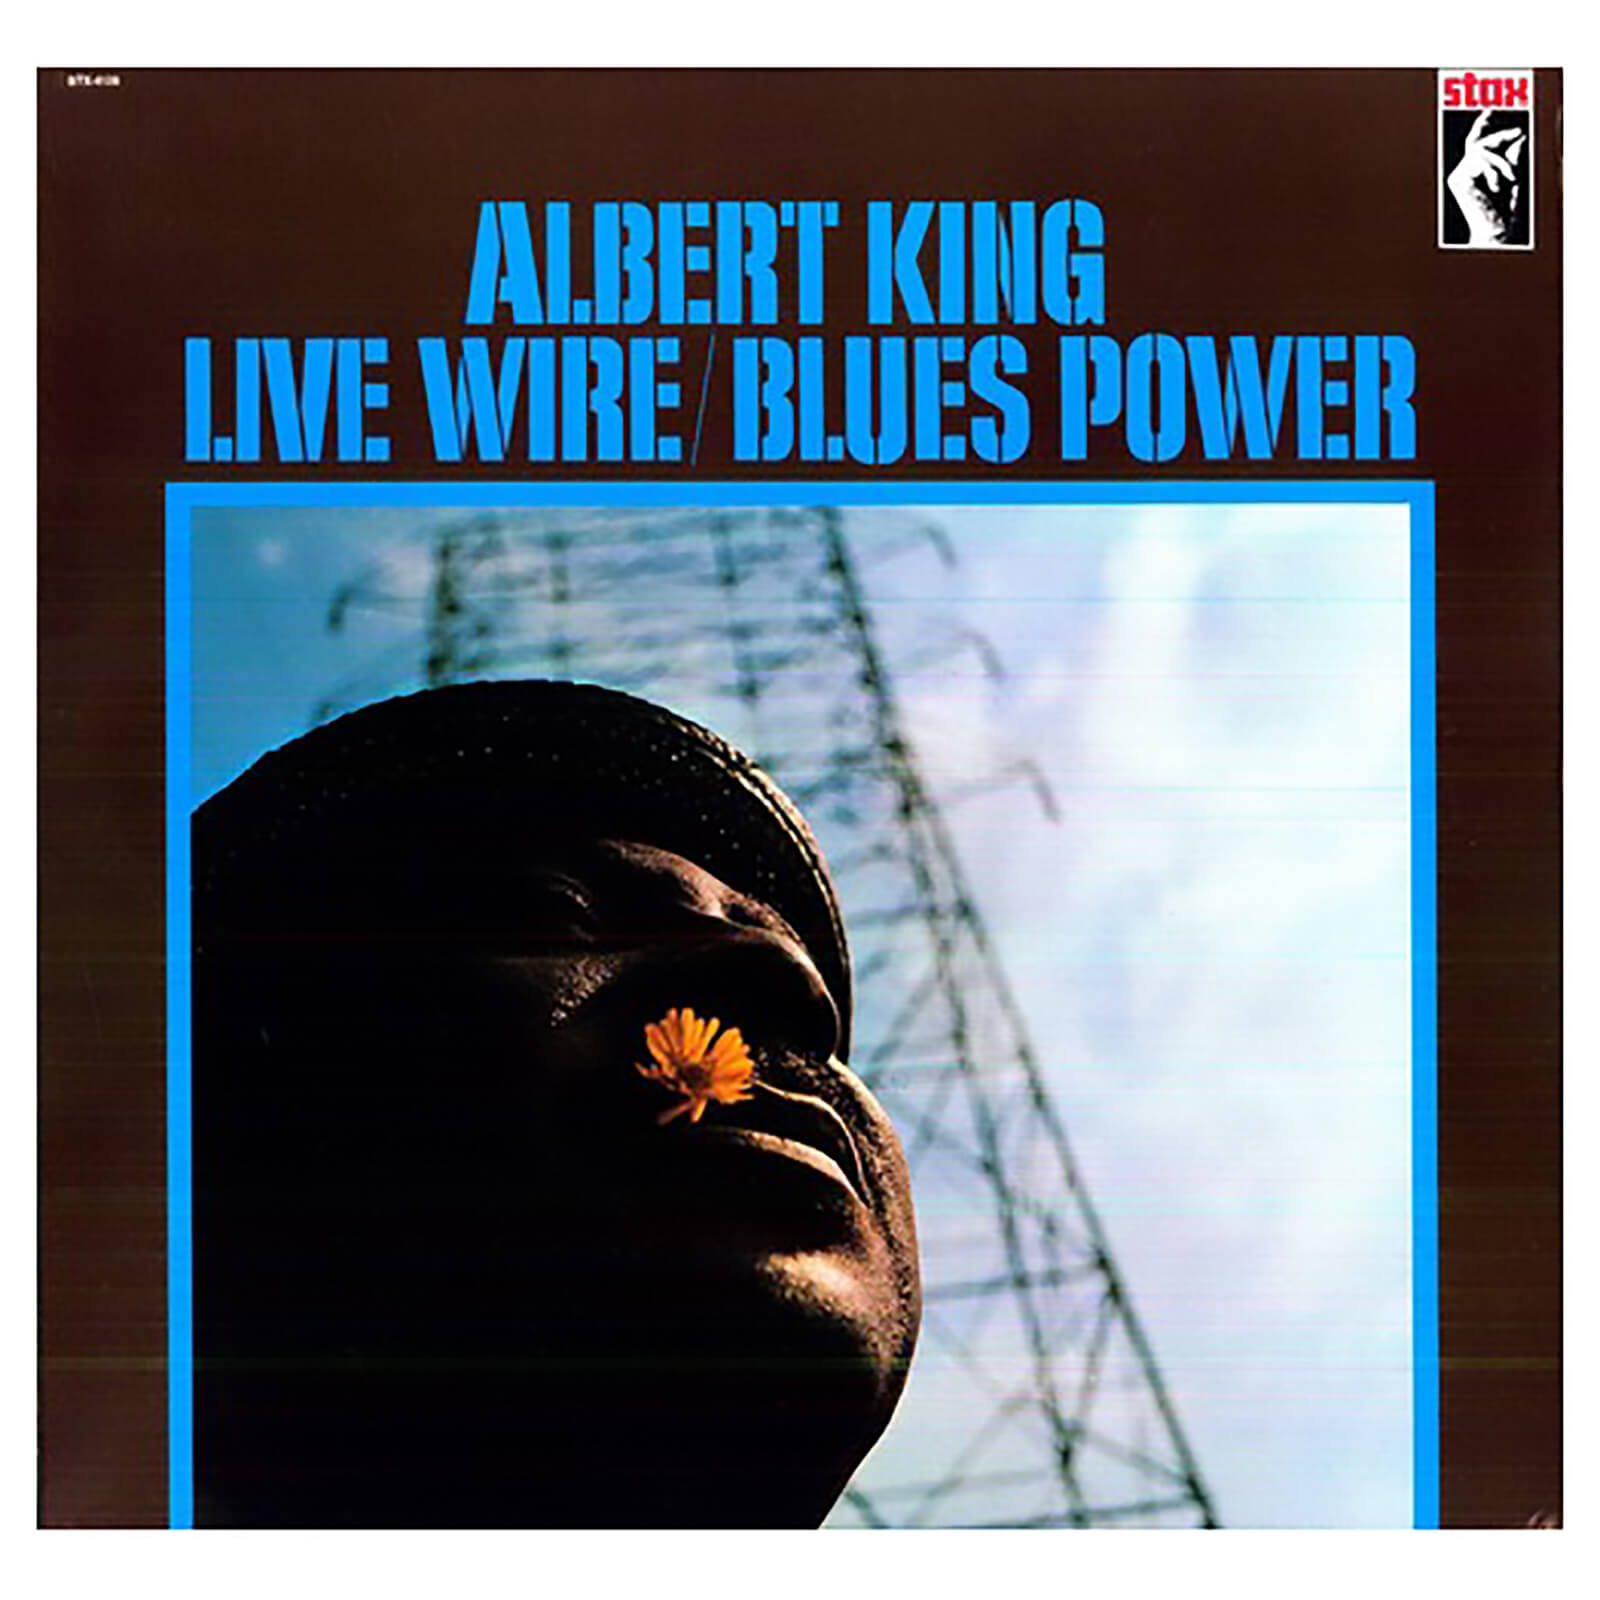 Albert King - Live Wire/Blues Power - Vinyl